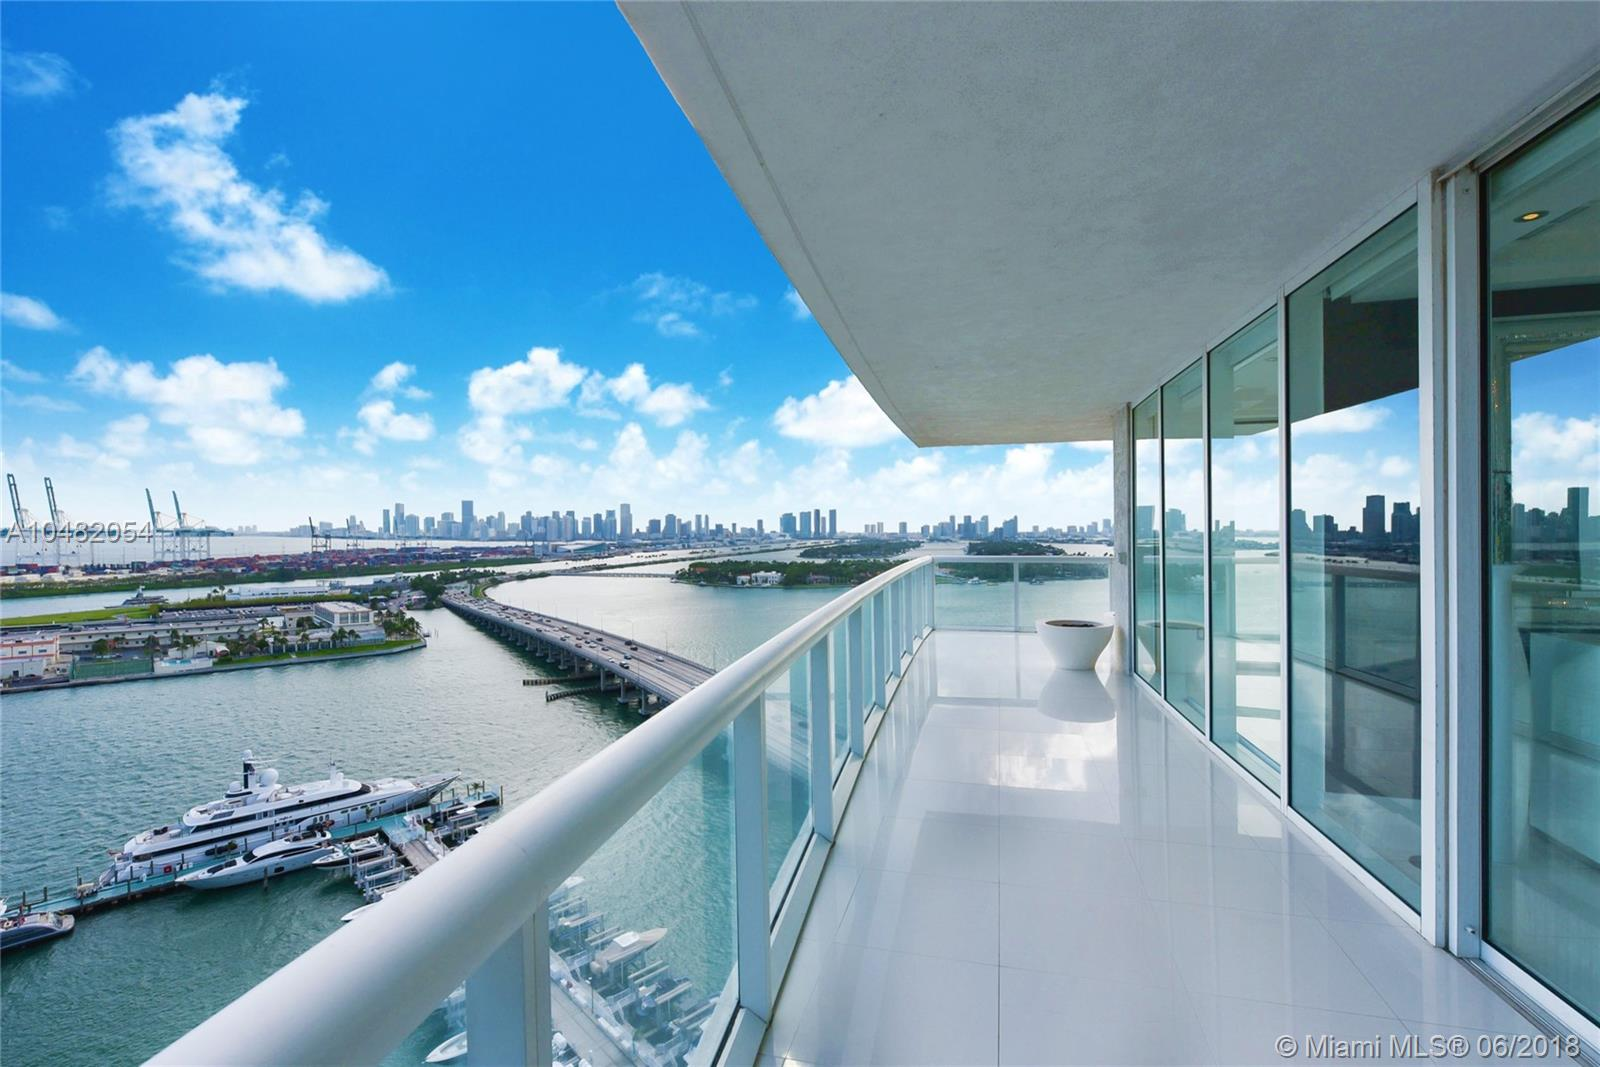 Live A Life In Paradise Every Day In The Premier 01 Residence Of Icon South Beach. Enjoy Impressive Sunrise & Sunsets Over The Stunning Miami Skyline From Your Oversized Wrap Around Terrace. Beautiful Custom Finishes Throughout Include Thassos Marble Flooring, Custom Designed Baths With Mother Of Pearl And Honed Black Marble, White Leather Doors And Panels, Sonos Sound System, Custom Window Treatments And Nest System Integrated With Your Ipad.The Floor Plan Was Perfectly Designed Into A Massive Two Bedroom Residence And Easily Converted Back To A Three Bedroom If Desired. Enjoy All The Top Restaurants & The Convenient Yacht Marina South Of Fifth Right At Your Doorstep. Icon Is A Philippe Starck Designed, Full-Service Building Incl. 24 Doorman/Valet, Private Restaurant & Fitness Center.